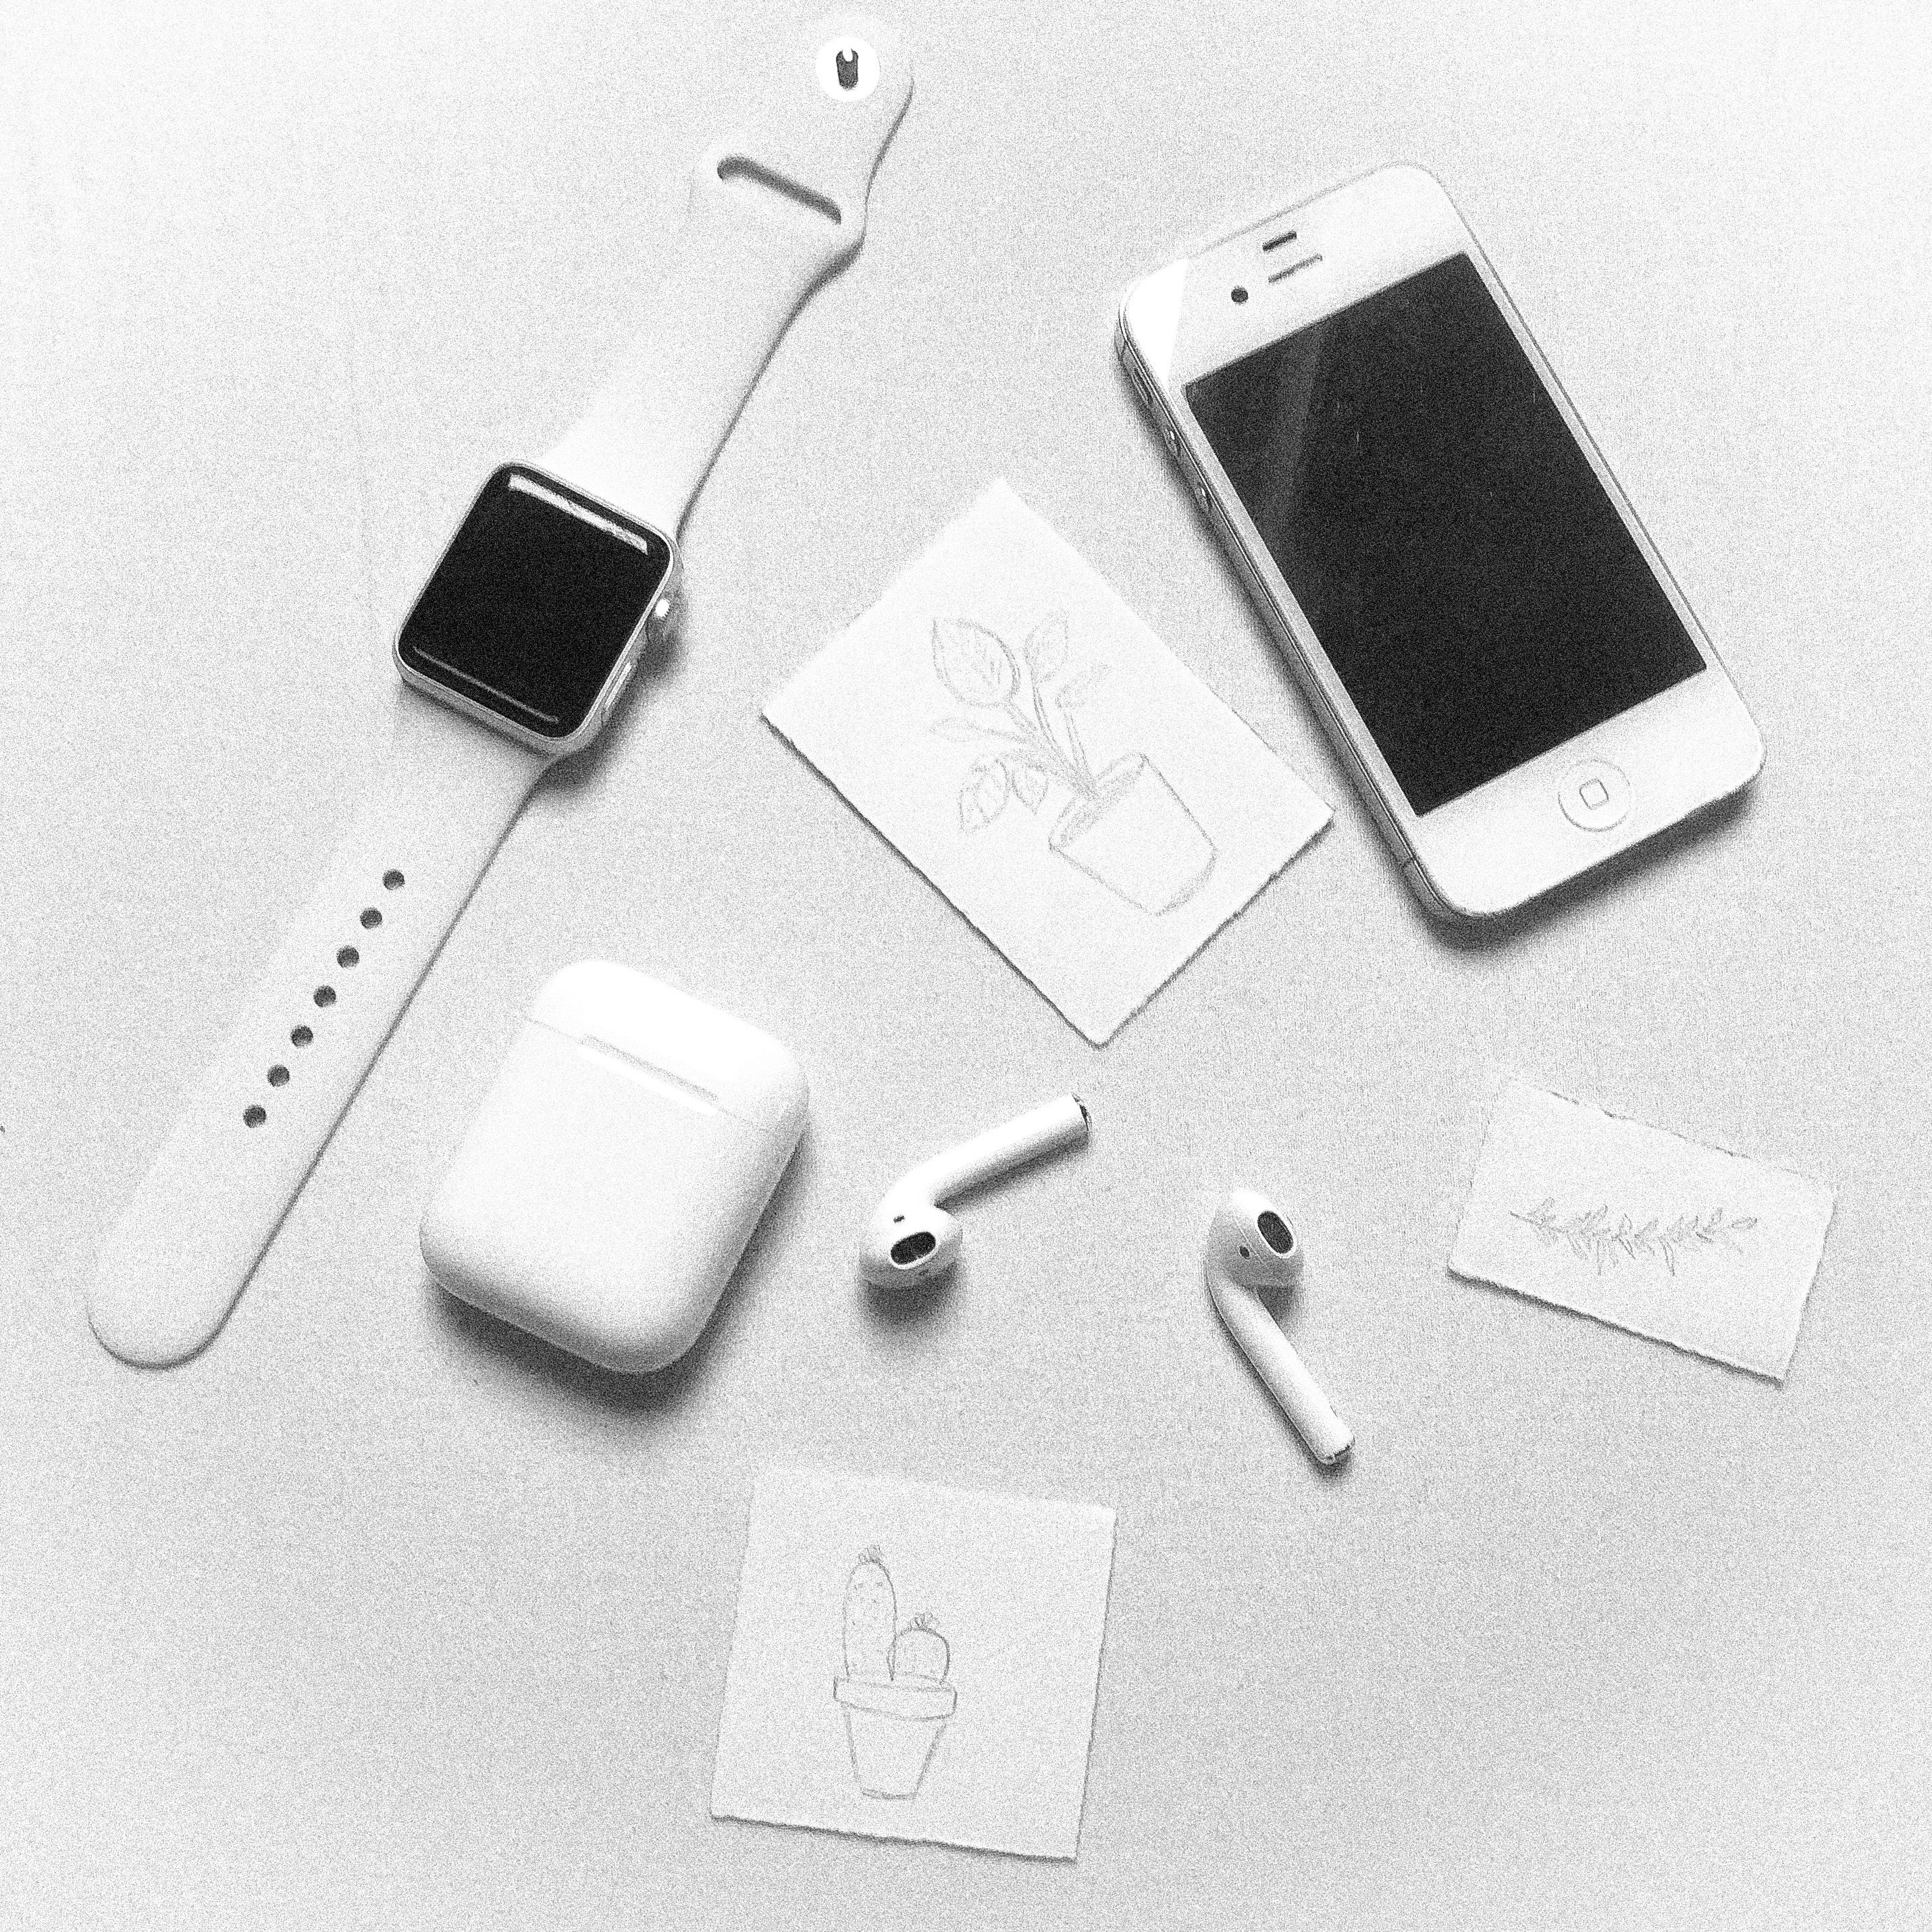 White aesthetic   All apple products, Apple watch white, Apple ...